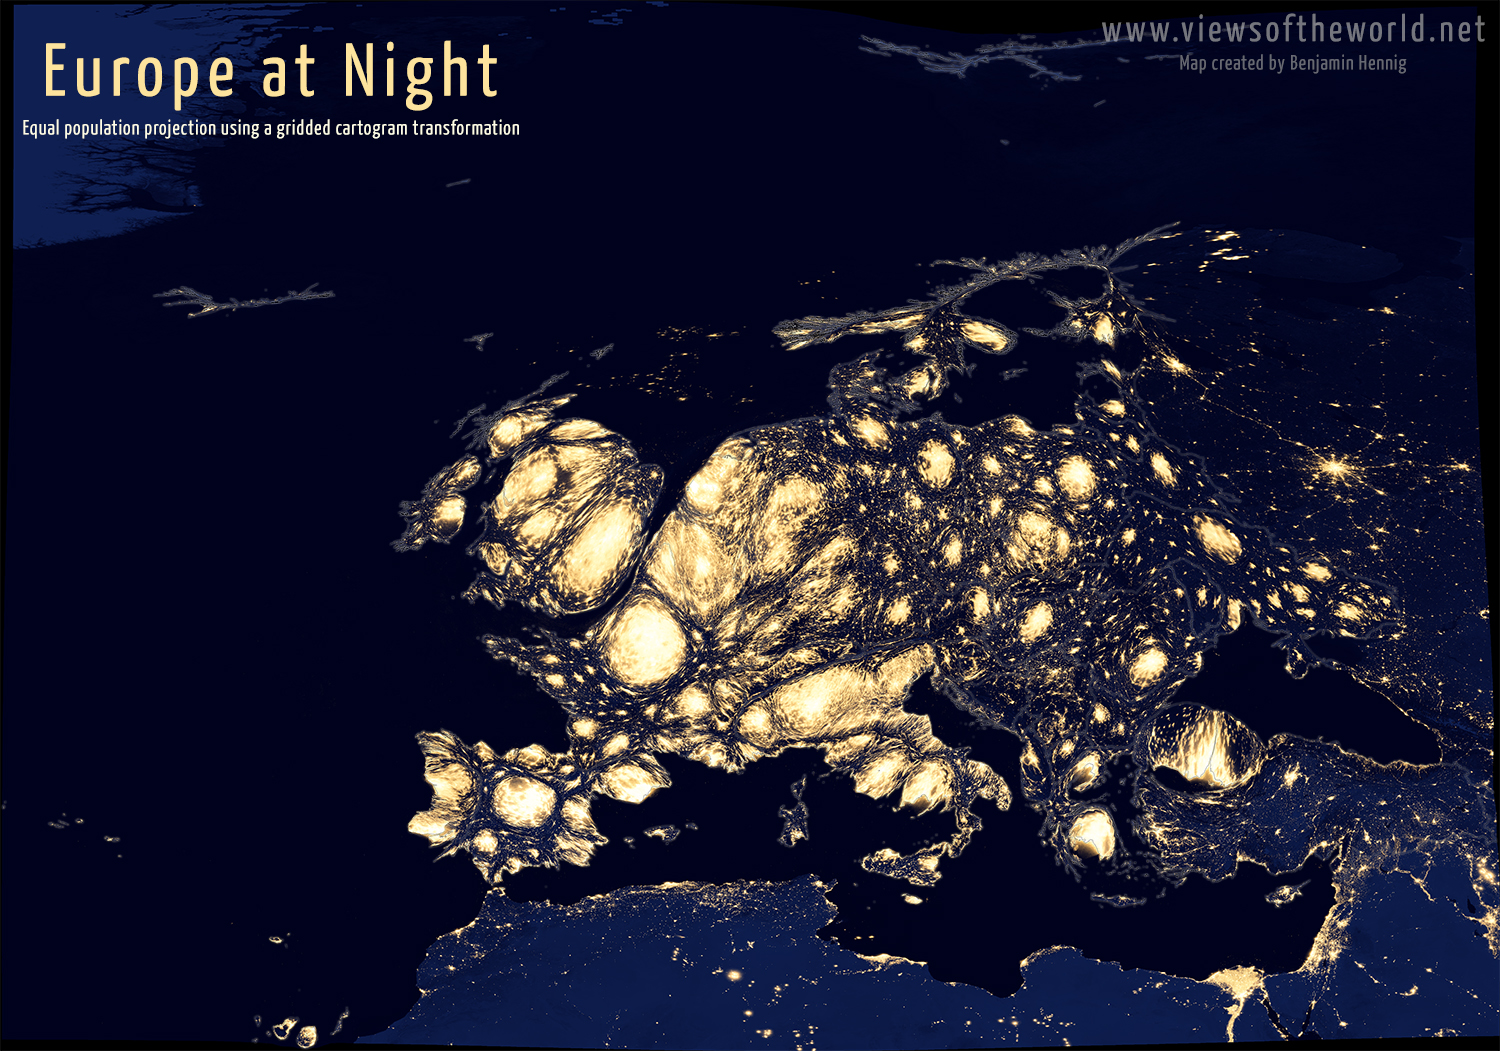 Europe At Night Views Of The World